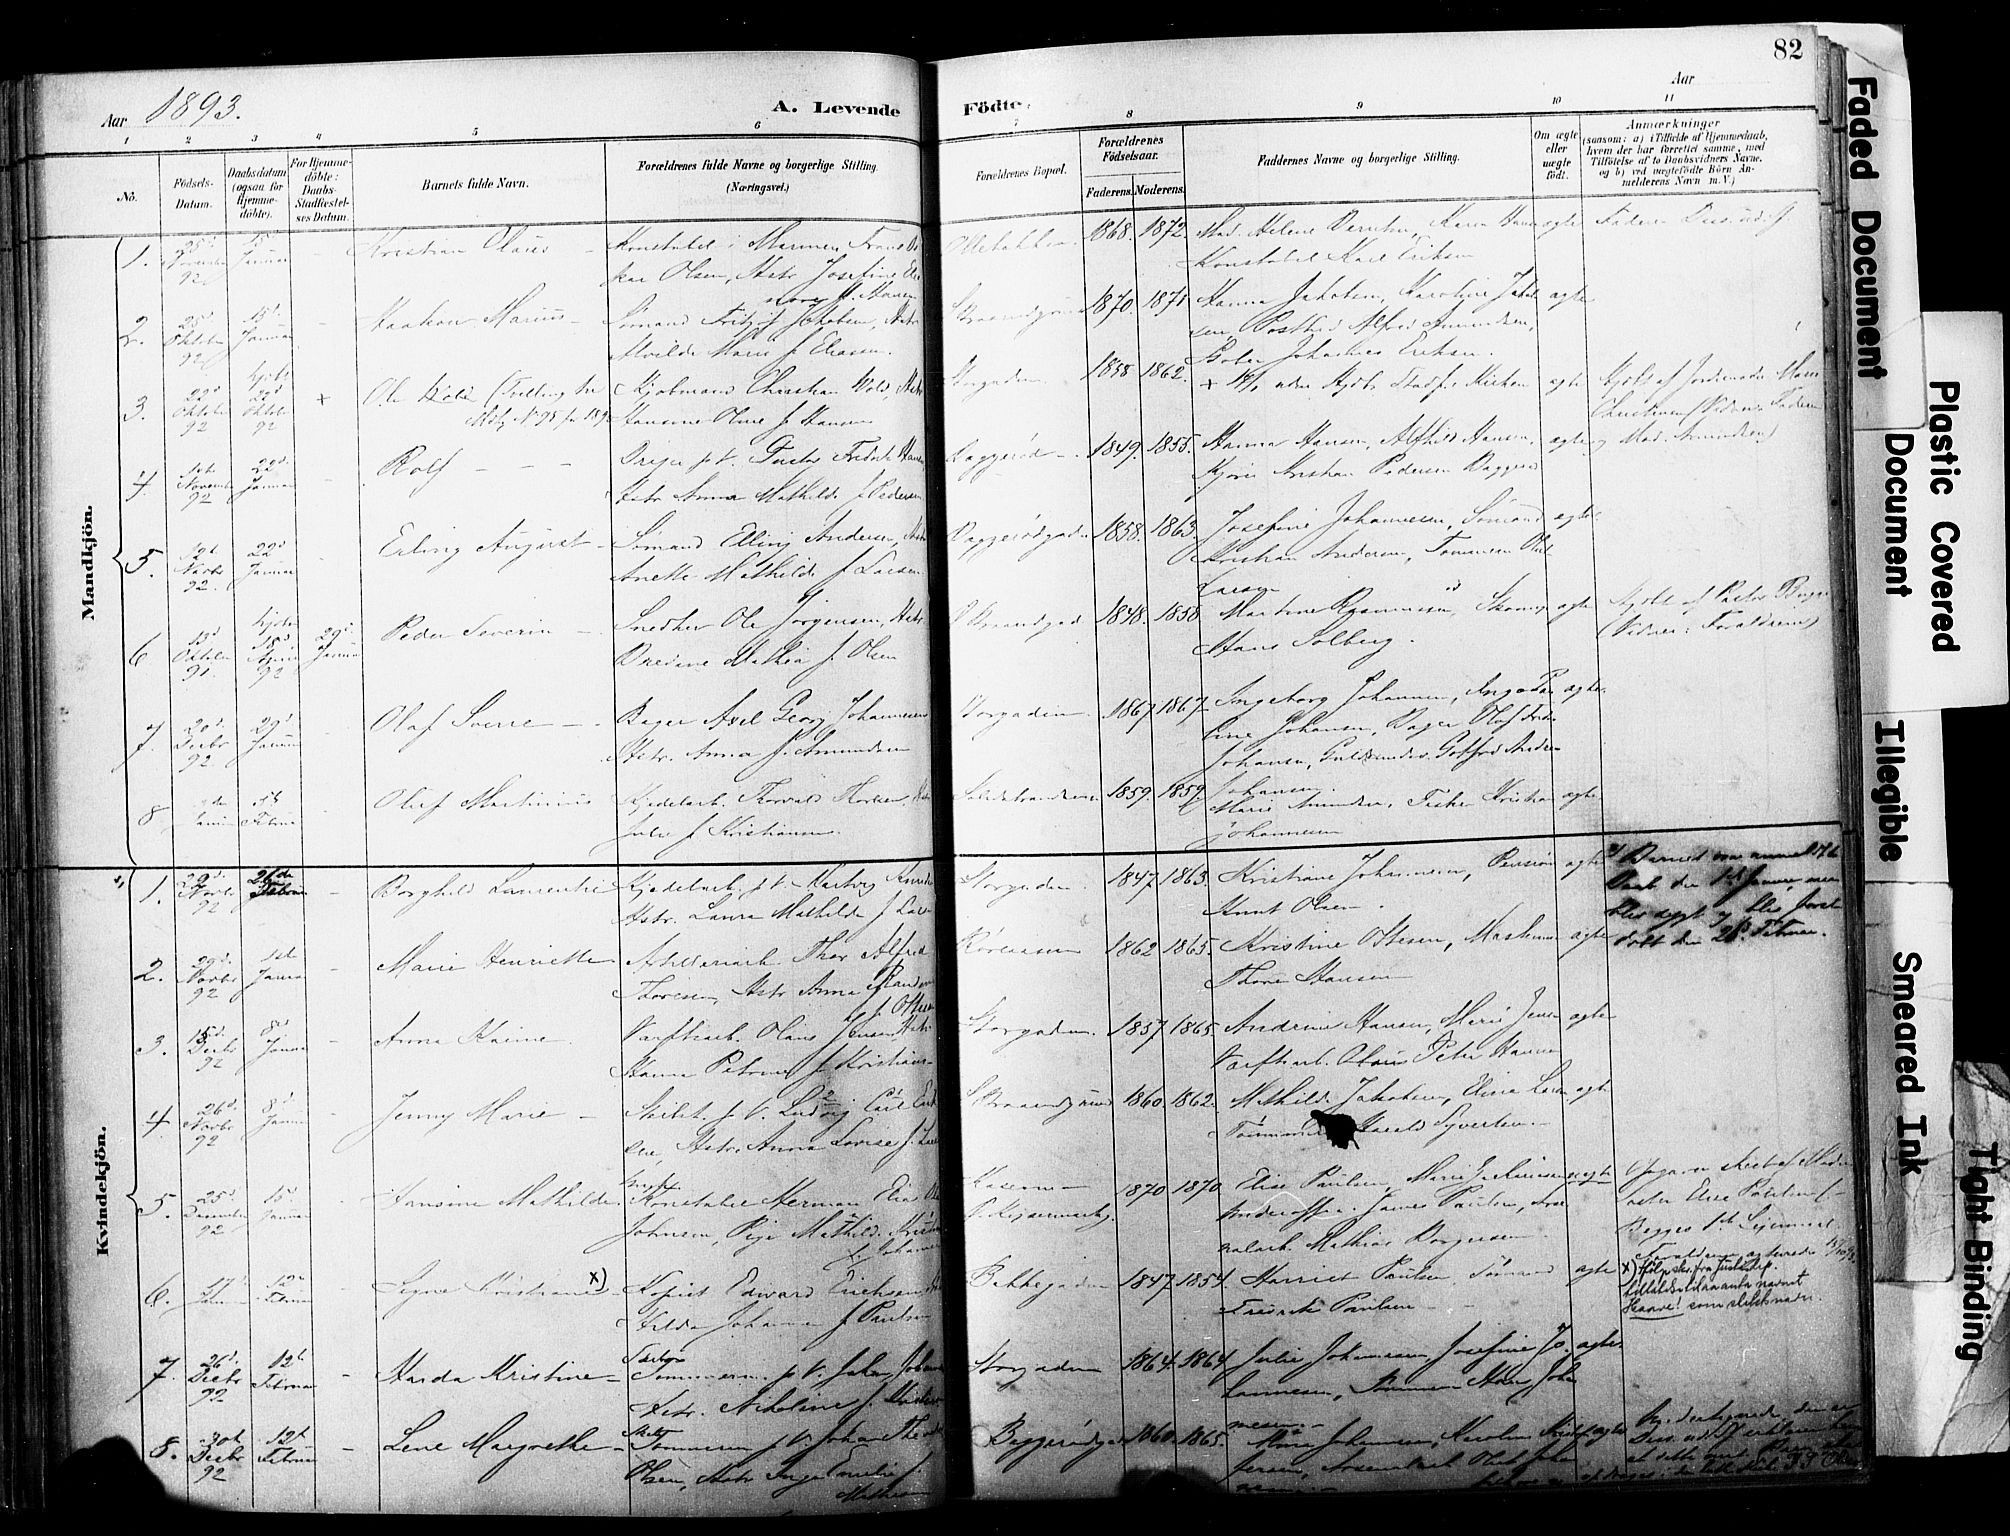 SAKO, Horten kirkebøker, F/Fa/L0004: Parish register (official) no. 4, 1888-1895, p. 82